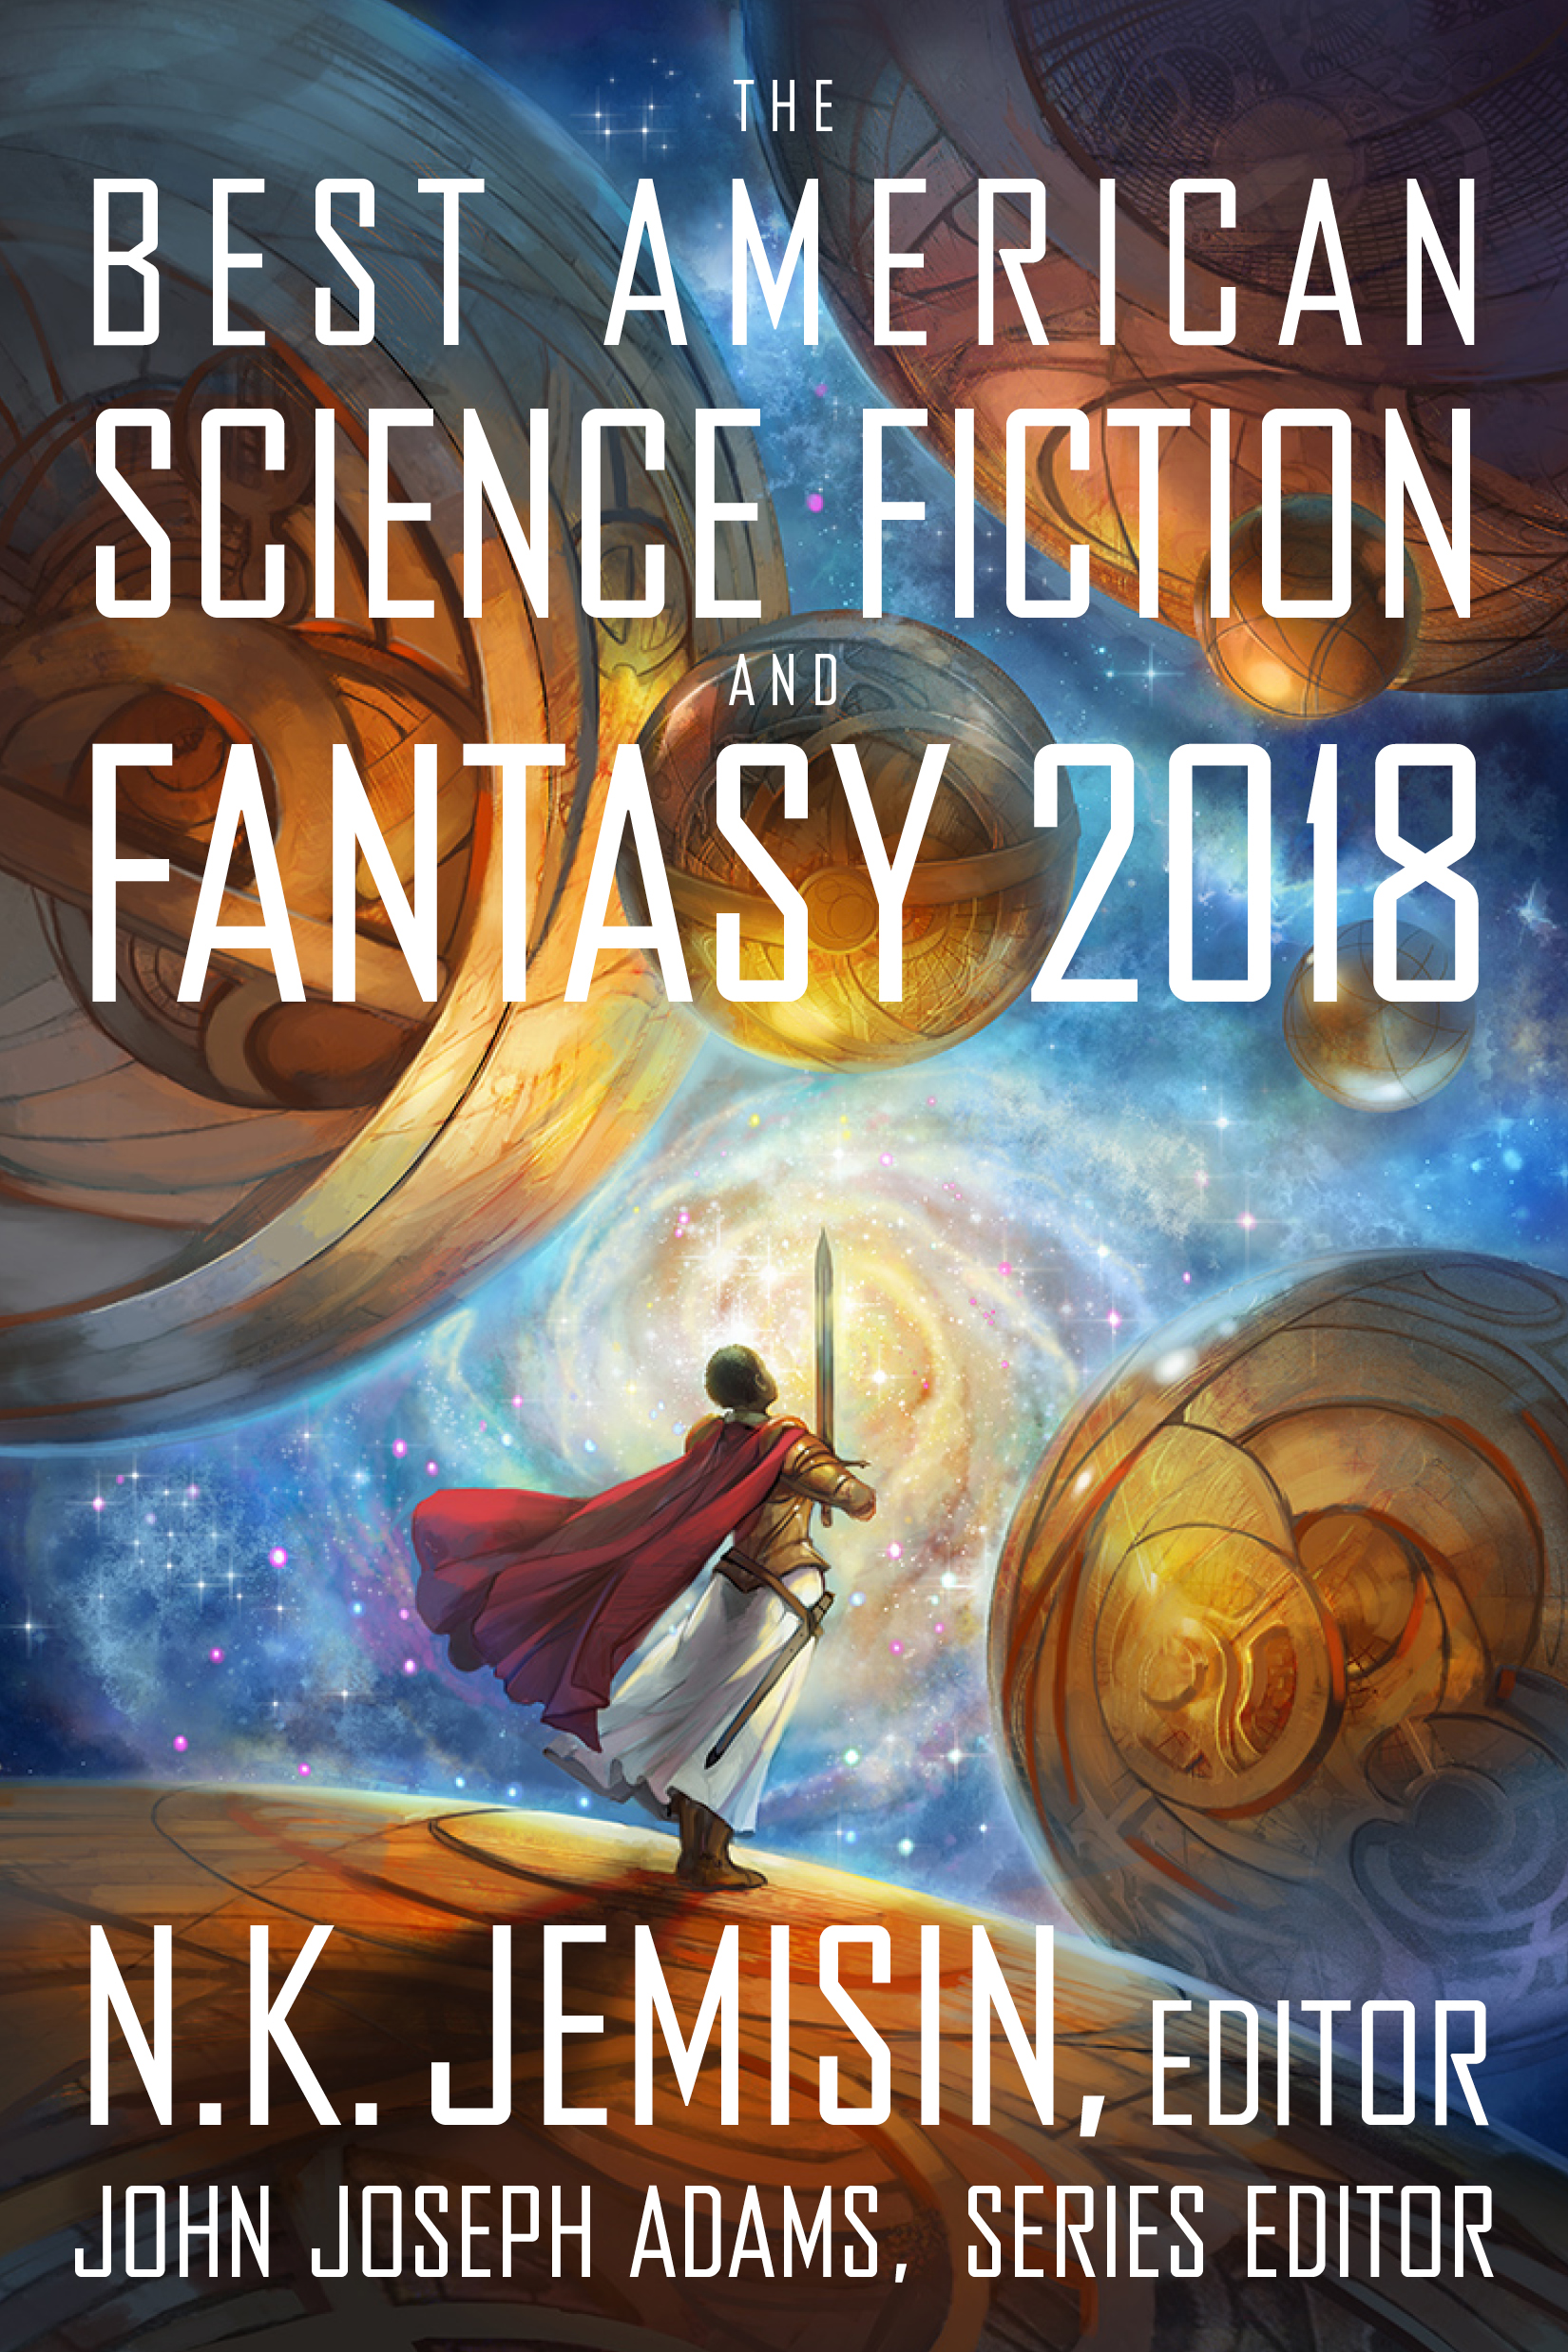 fiction science books fantasy american series sci fi authors jemisin story released author october writers joseph destroy kate fairwood hmhco